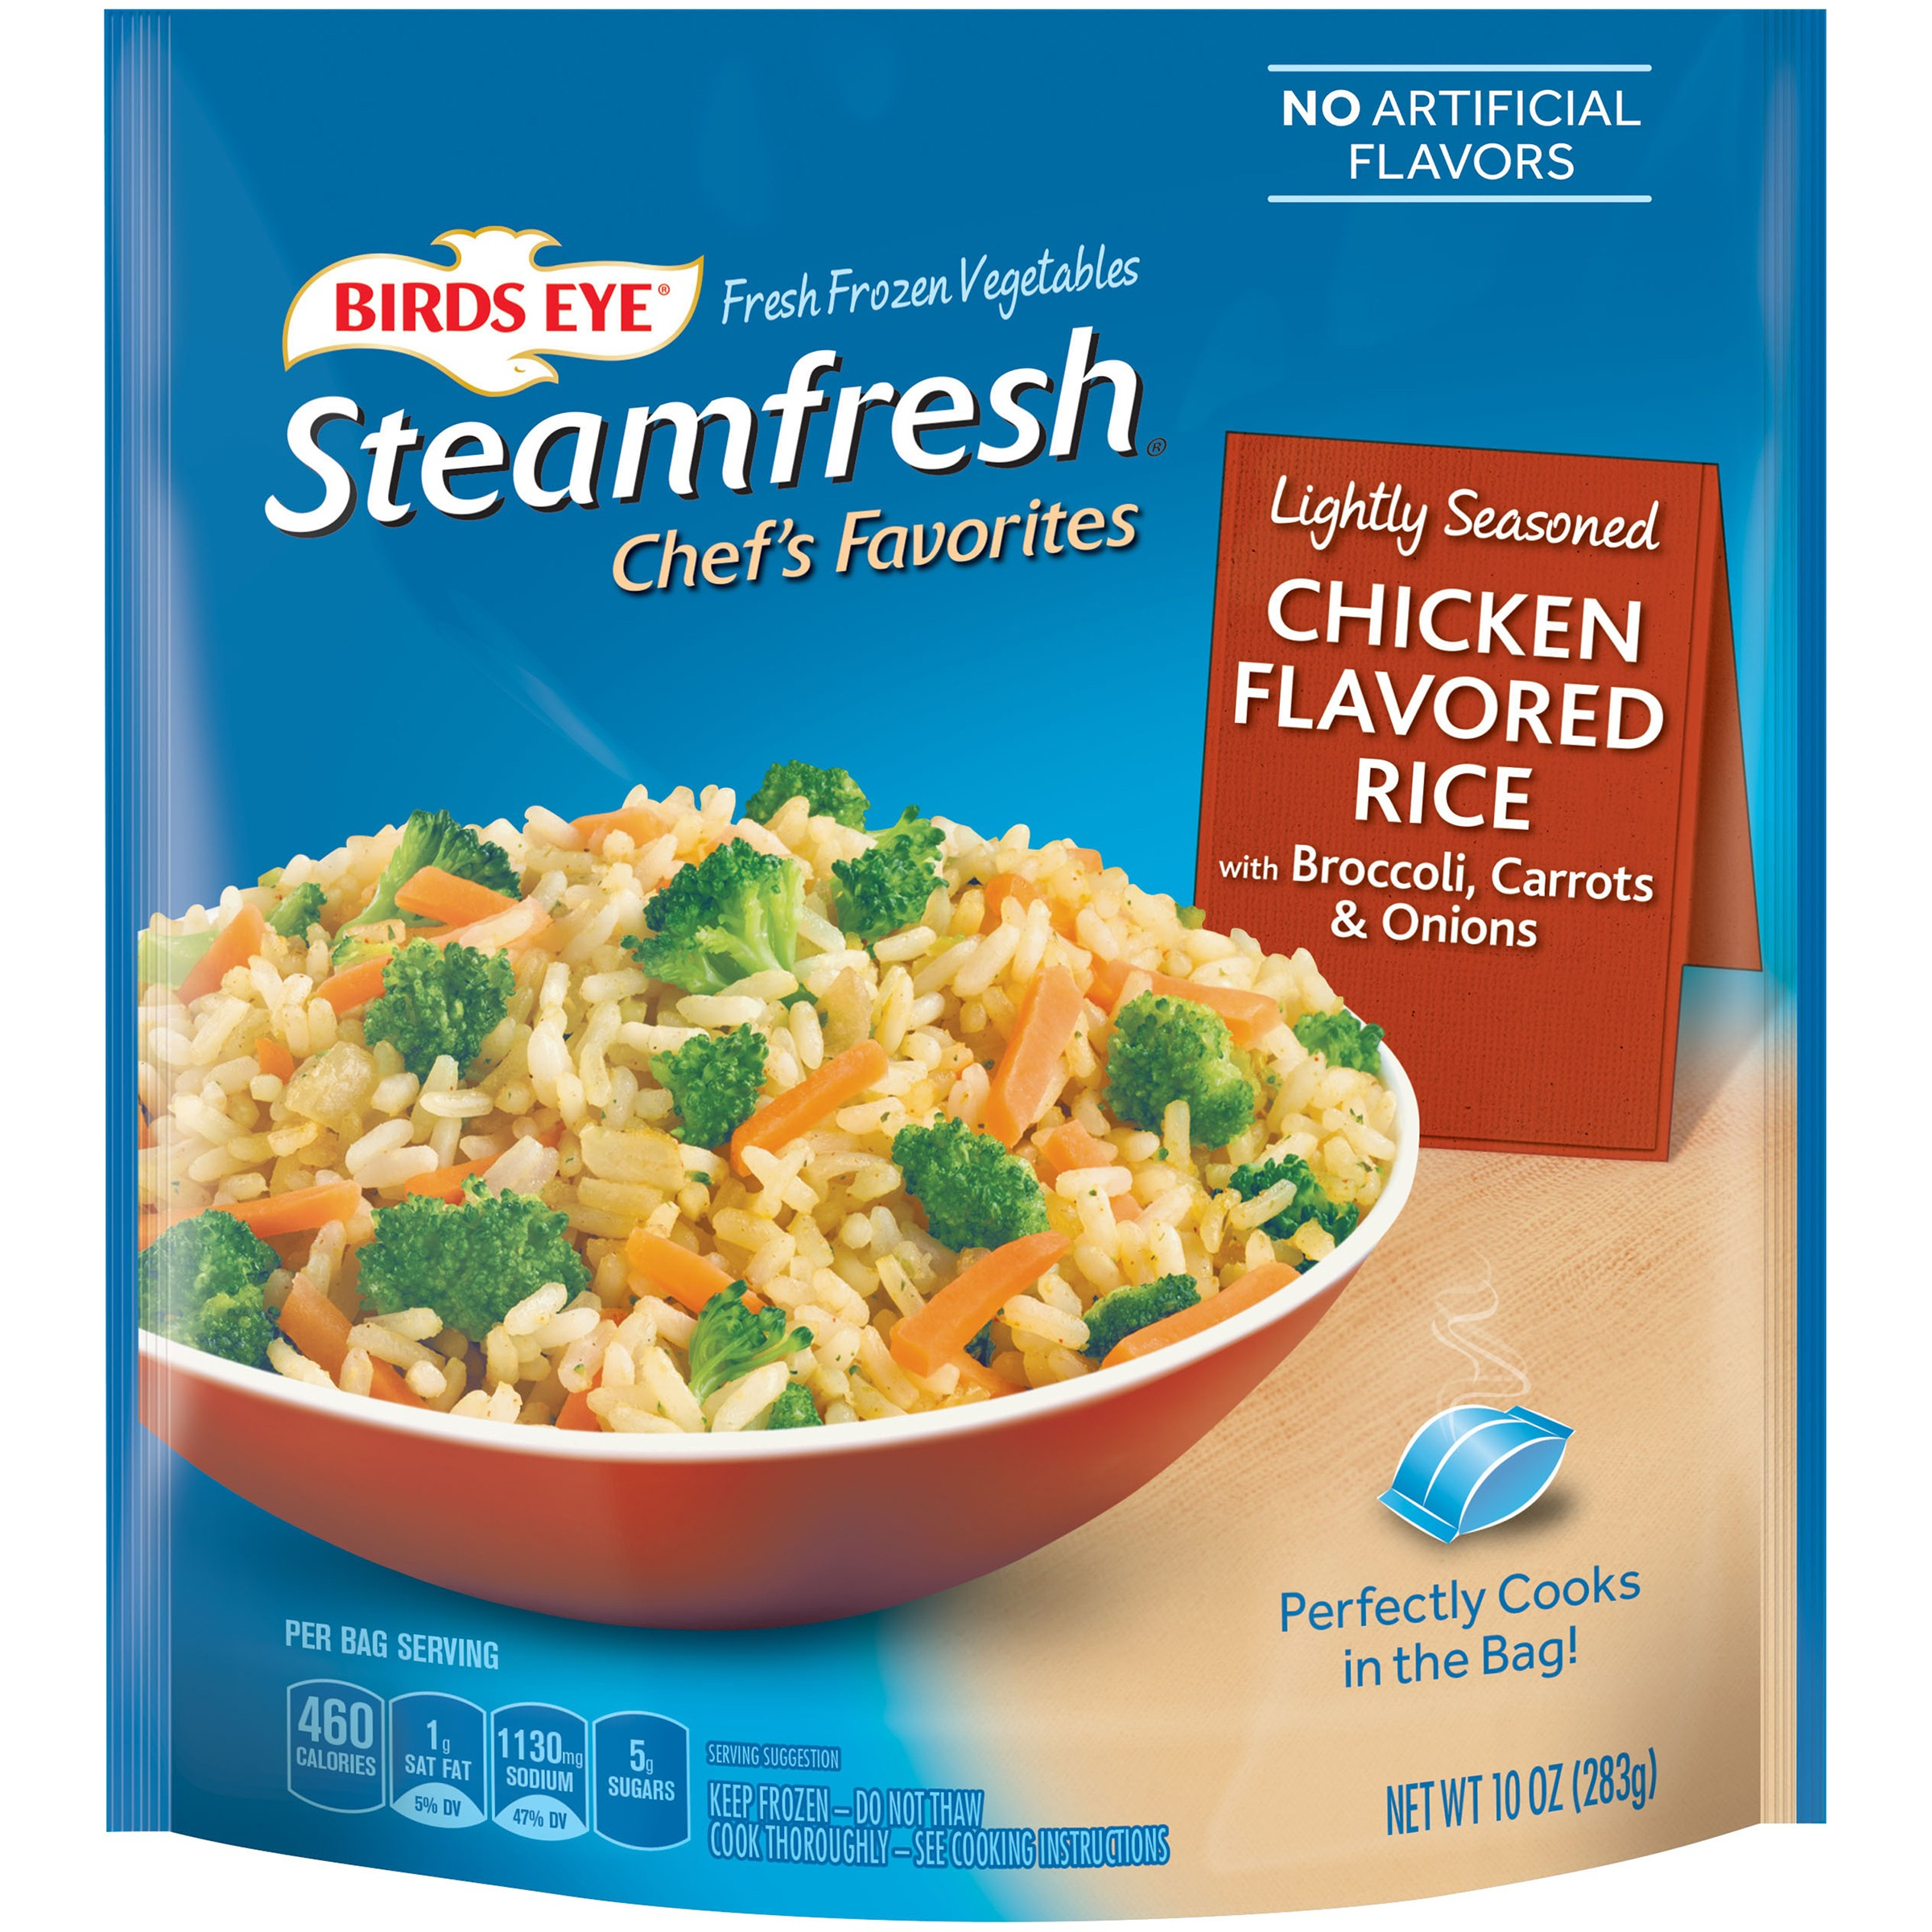 Birds Eye® Steamfresh® Chef's Favorites Lightly Seasoned Chicken Flavored Rice 10 oz. Bag